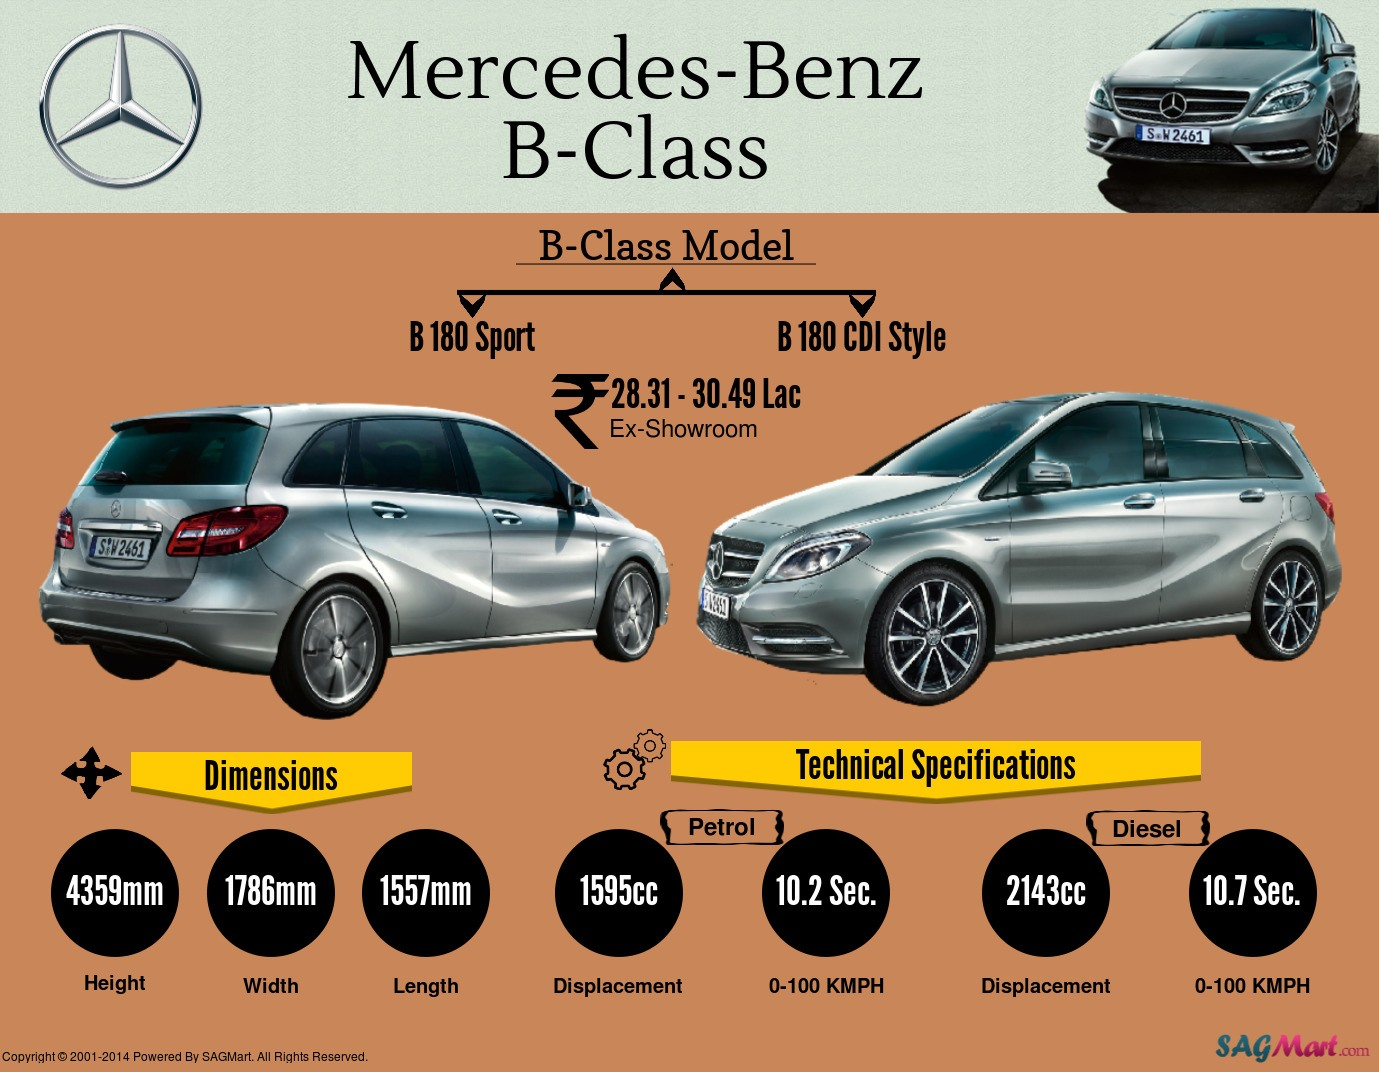 Mercedes benz b class luxury car specifications for Mercedes benz b class specifications